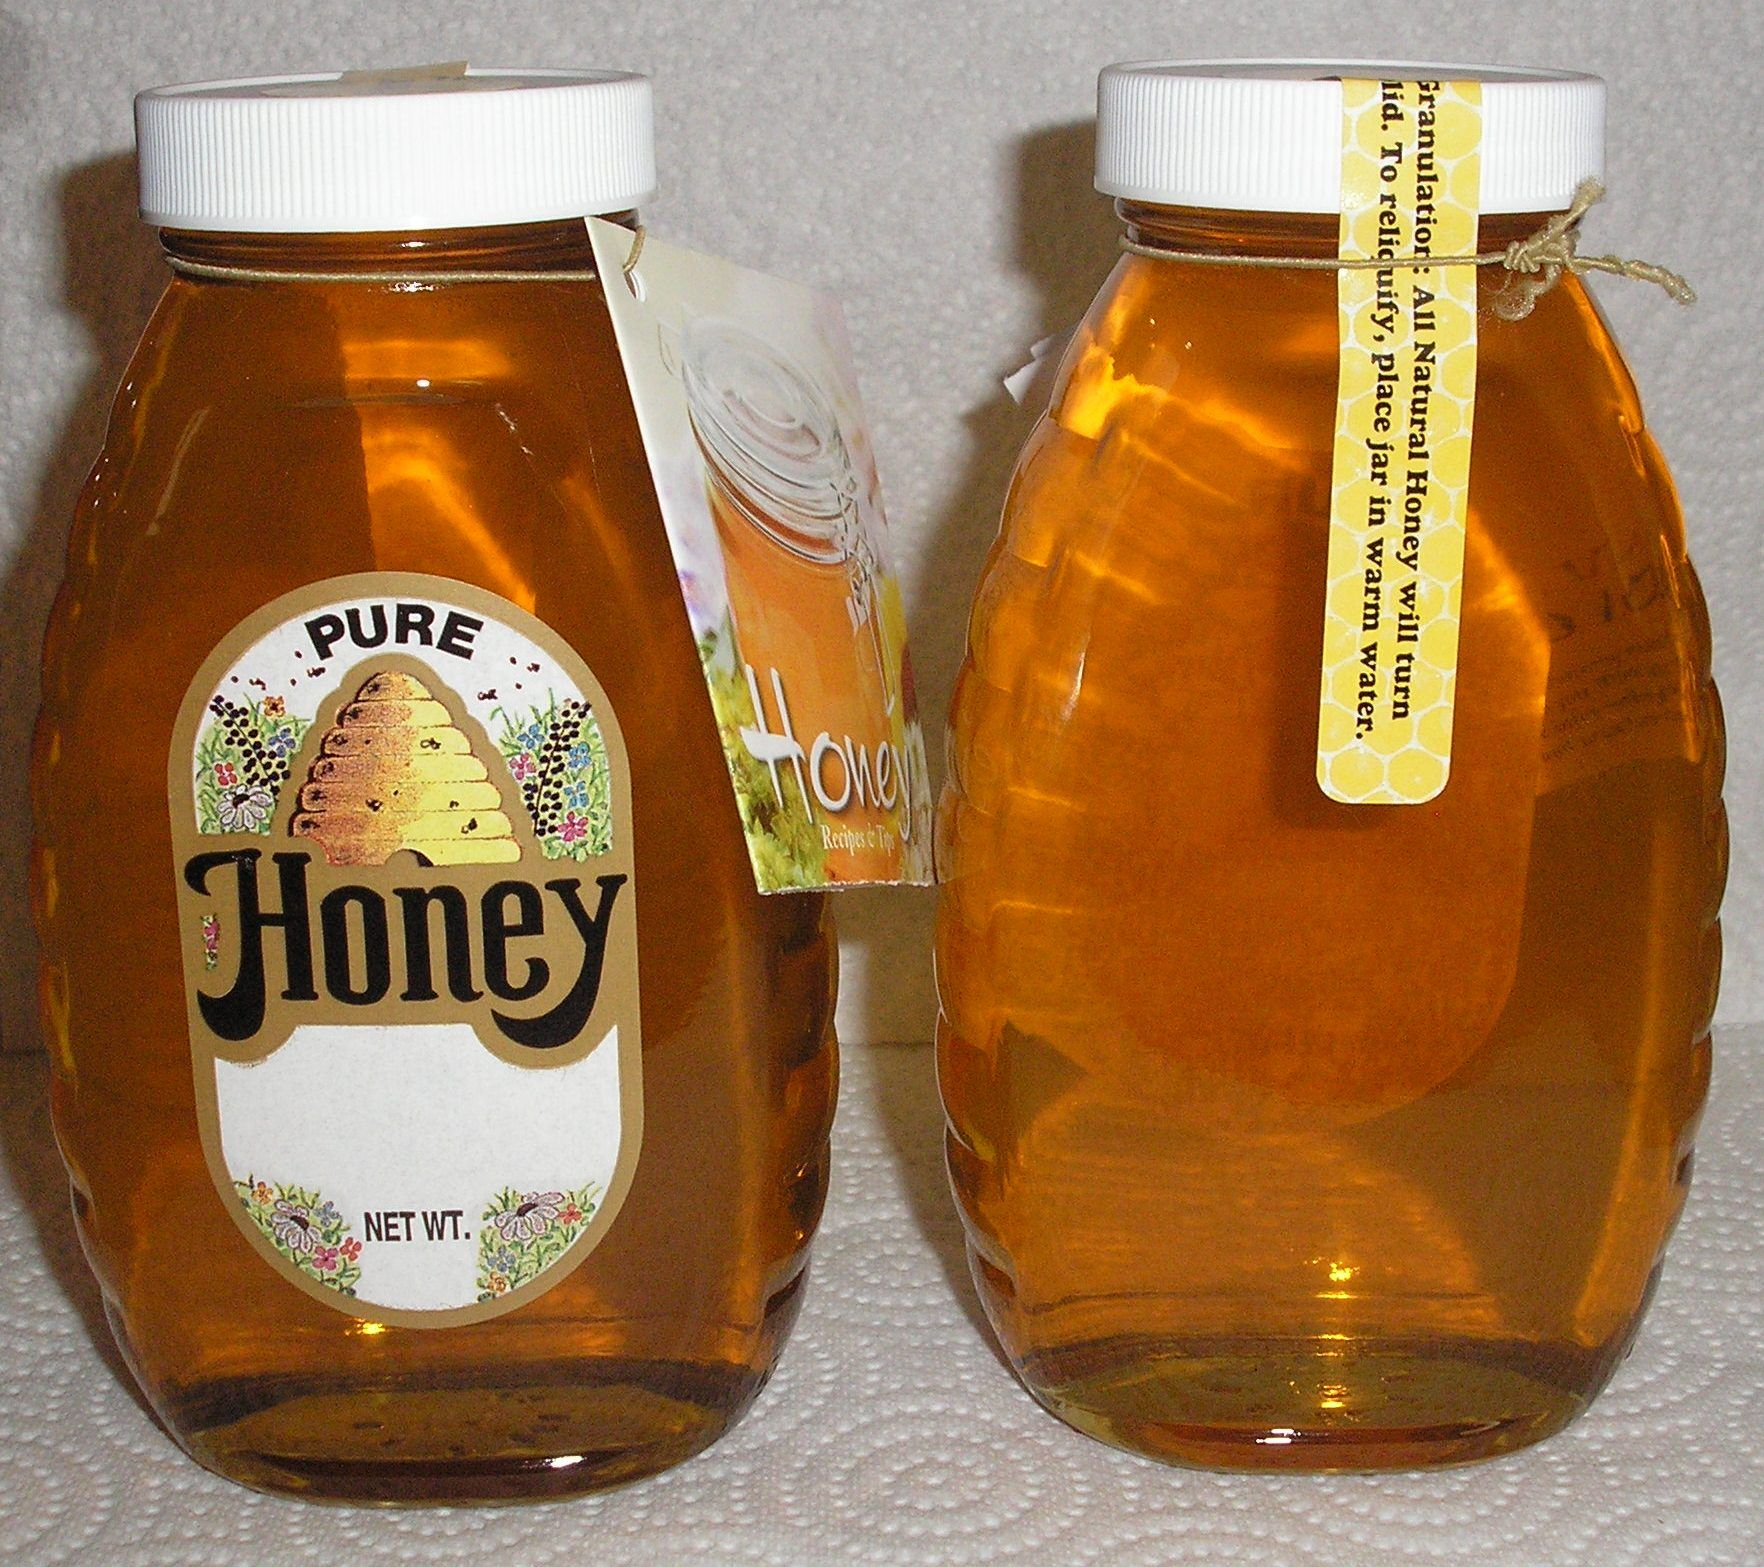 78 Best images about Honey Labels Research on Pinterest | Jars ...